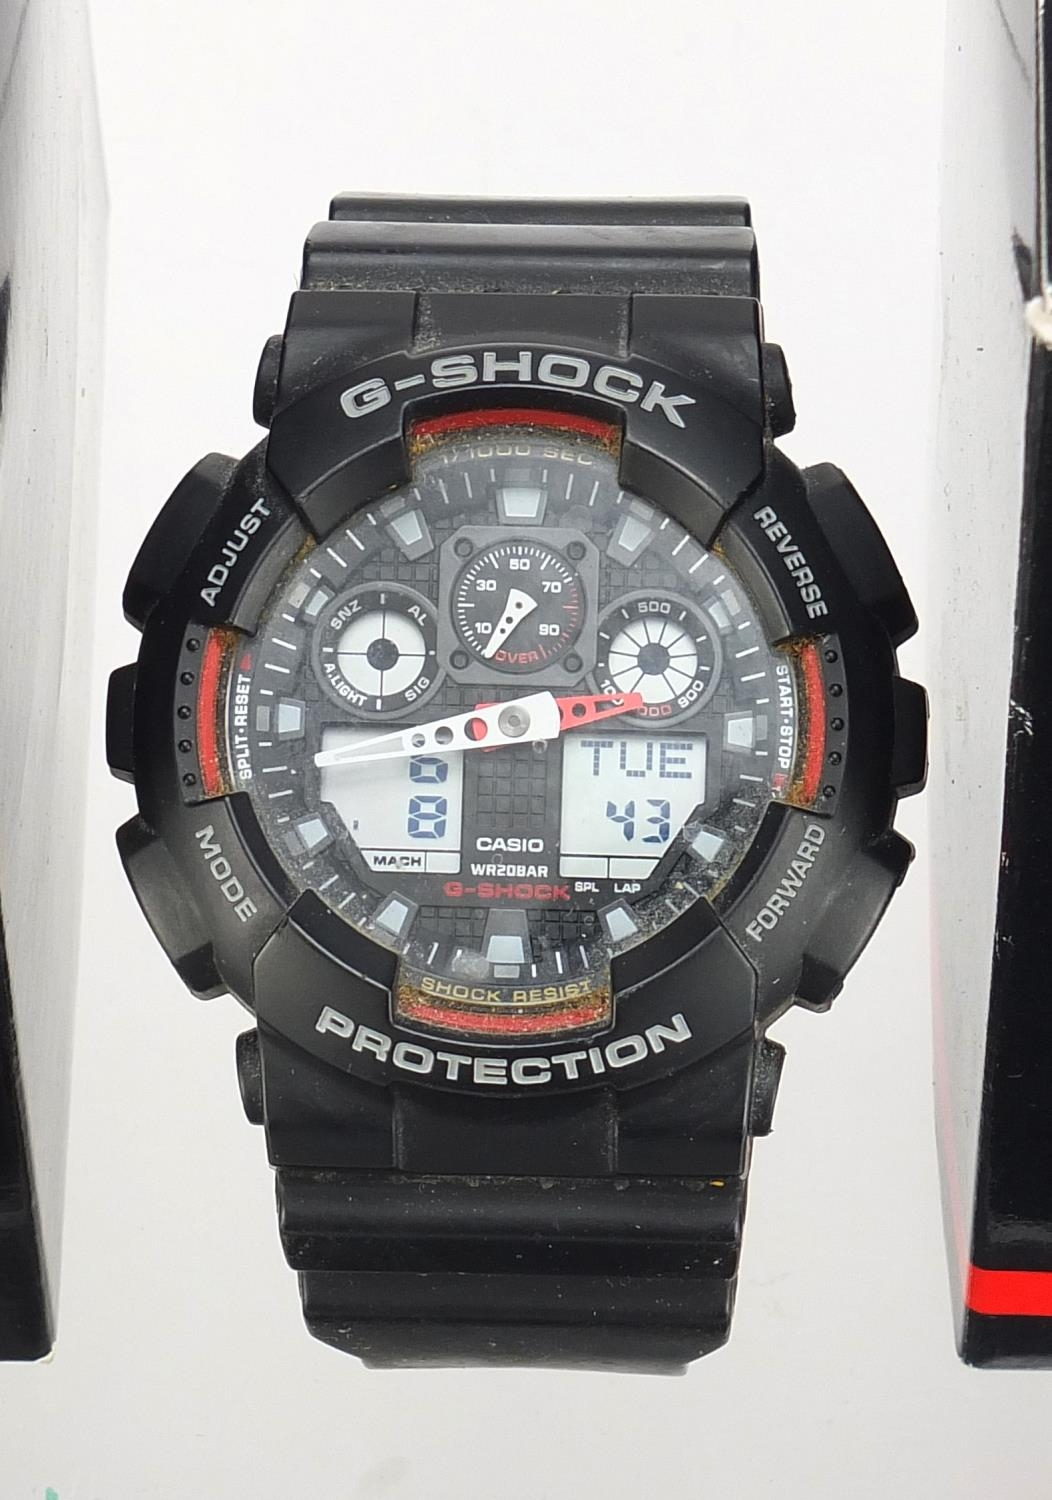 Four gentlemen's Casio G-Shock wristwatches with boxes, numbered GA-100, GA-100CF, GBA-800 and GW- - Image 2 of 5